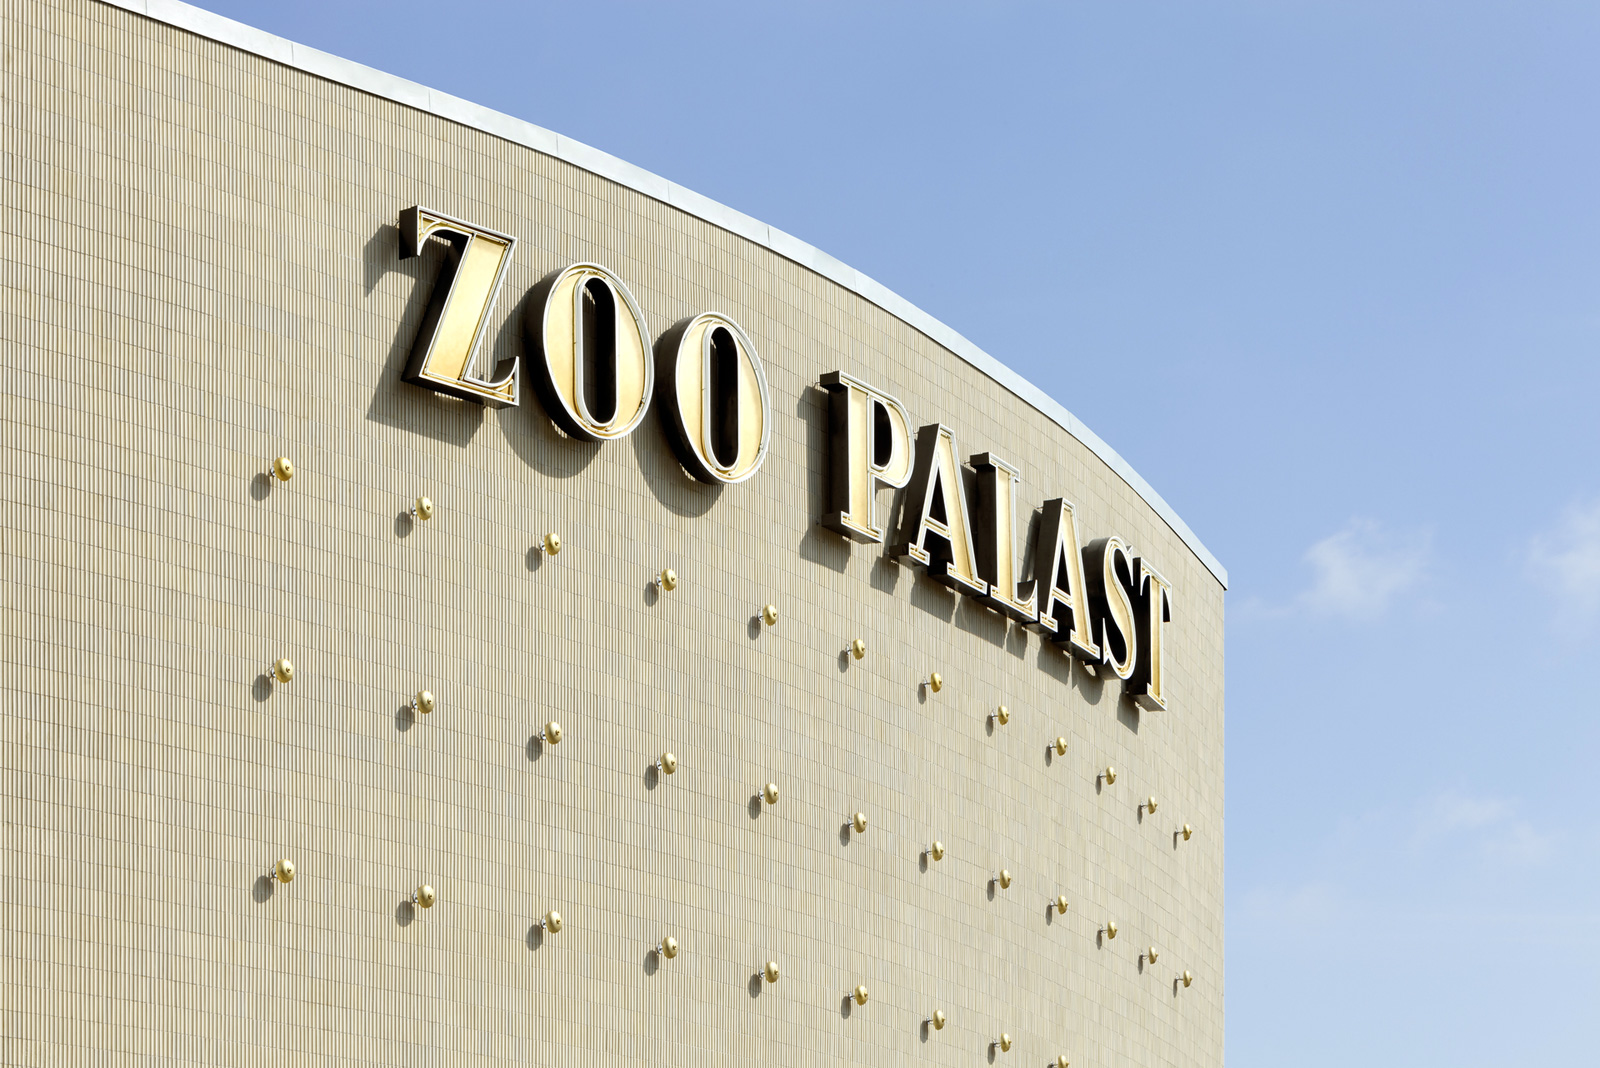 Zoo Palast in Berlin, Germany